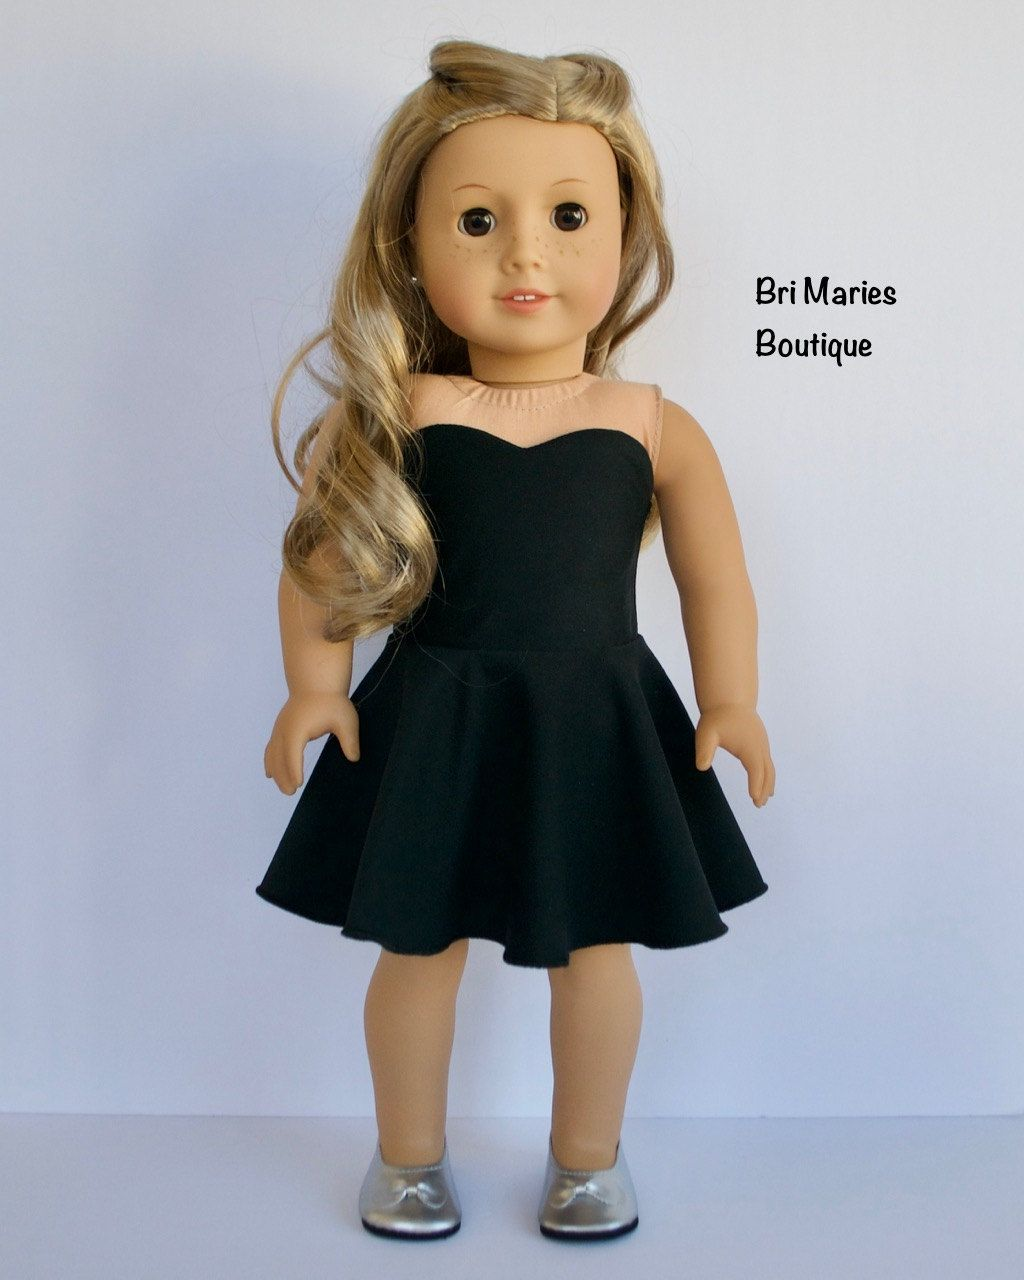 Black Leggings Pants Trousers Outfit For 18 Inch American Girl Dolls